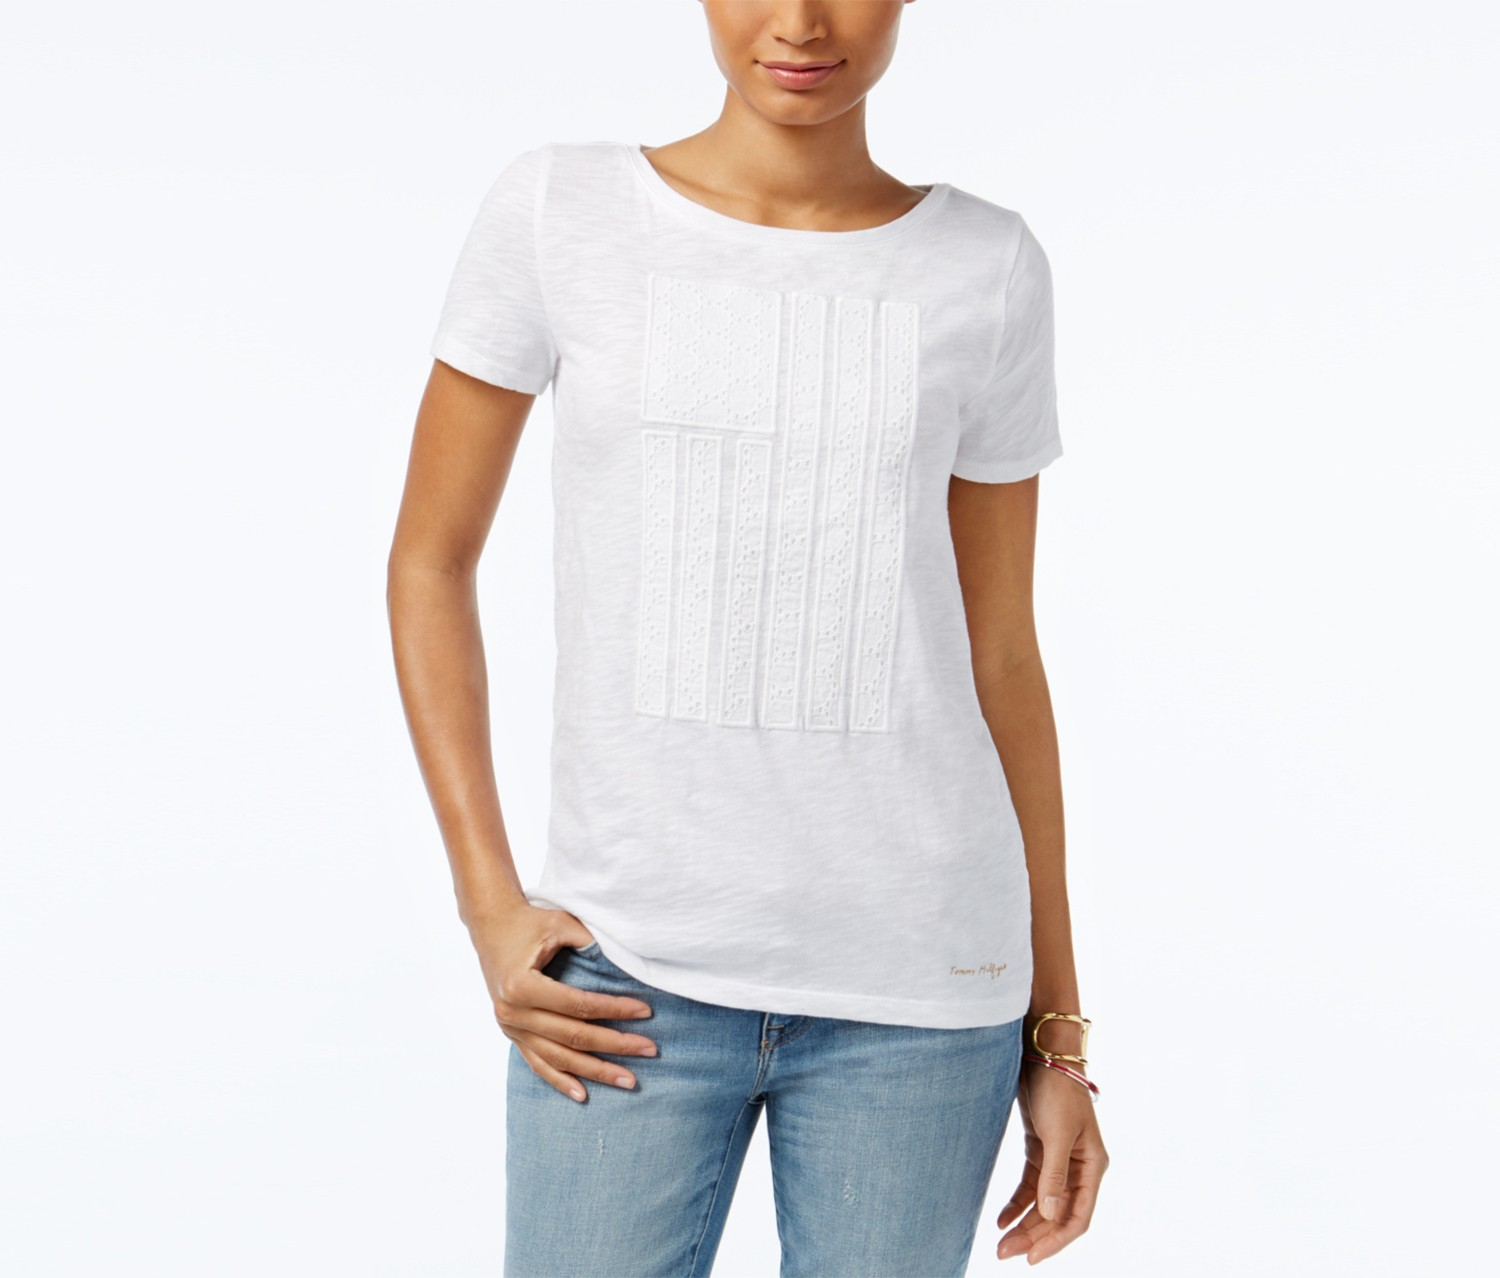 9483c216 Home Women Clothing Tops & Tees Tommy Hilfiger Dawn Embroidered Graphic T- Shirt, White. Reebok Sportswear · Kids Summer Clothing.  18/517/7670114112.jpg